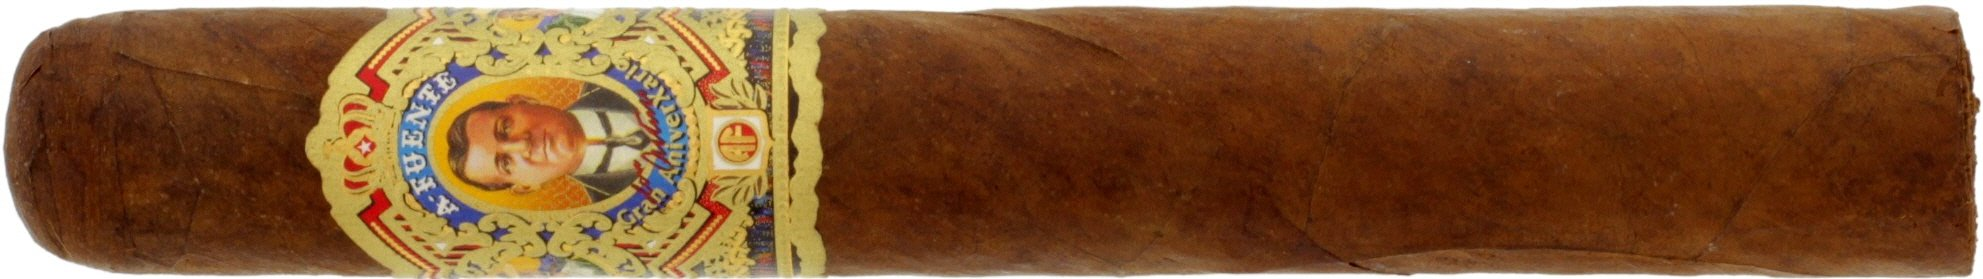 Arturo Fuente The Fuente Story SUN GROWN Double Robusto 2011